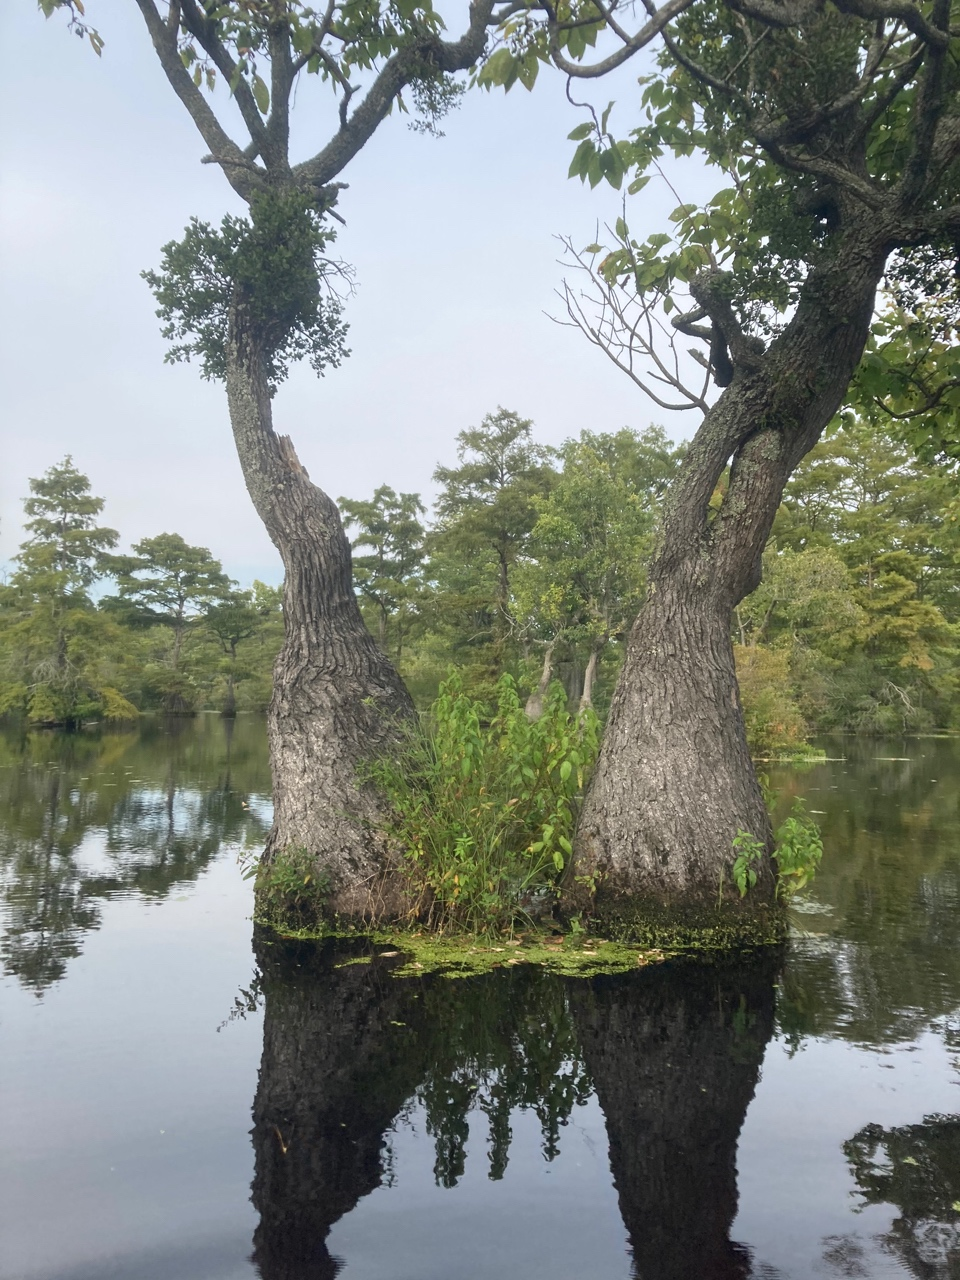 The Scientific Name is Nyssa aquatica [=Nyssa uniflora]. You will likely hear them called Water Tupelo, Tupelo Gum, Cotton Gum, Large Tupelo, Water Gum. This picture shows the Growing in a swamp with the characteristic swollen trunk base. American Mistletoe growing on it which creates a gnarly-shaped trunk. of Nyssa aquatica [=Nyssa uniflora]